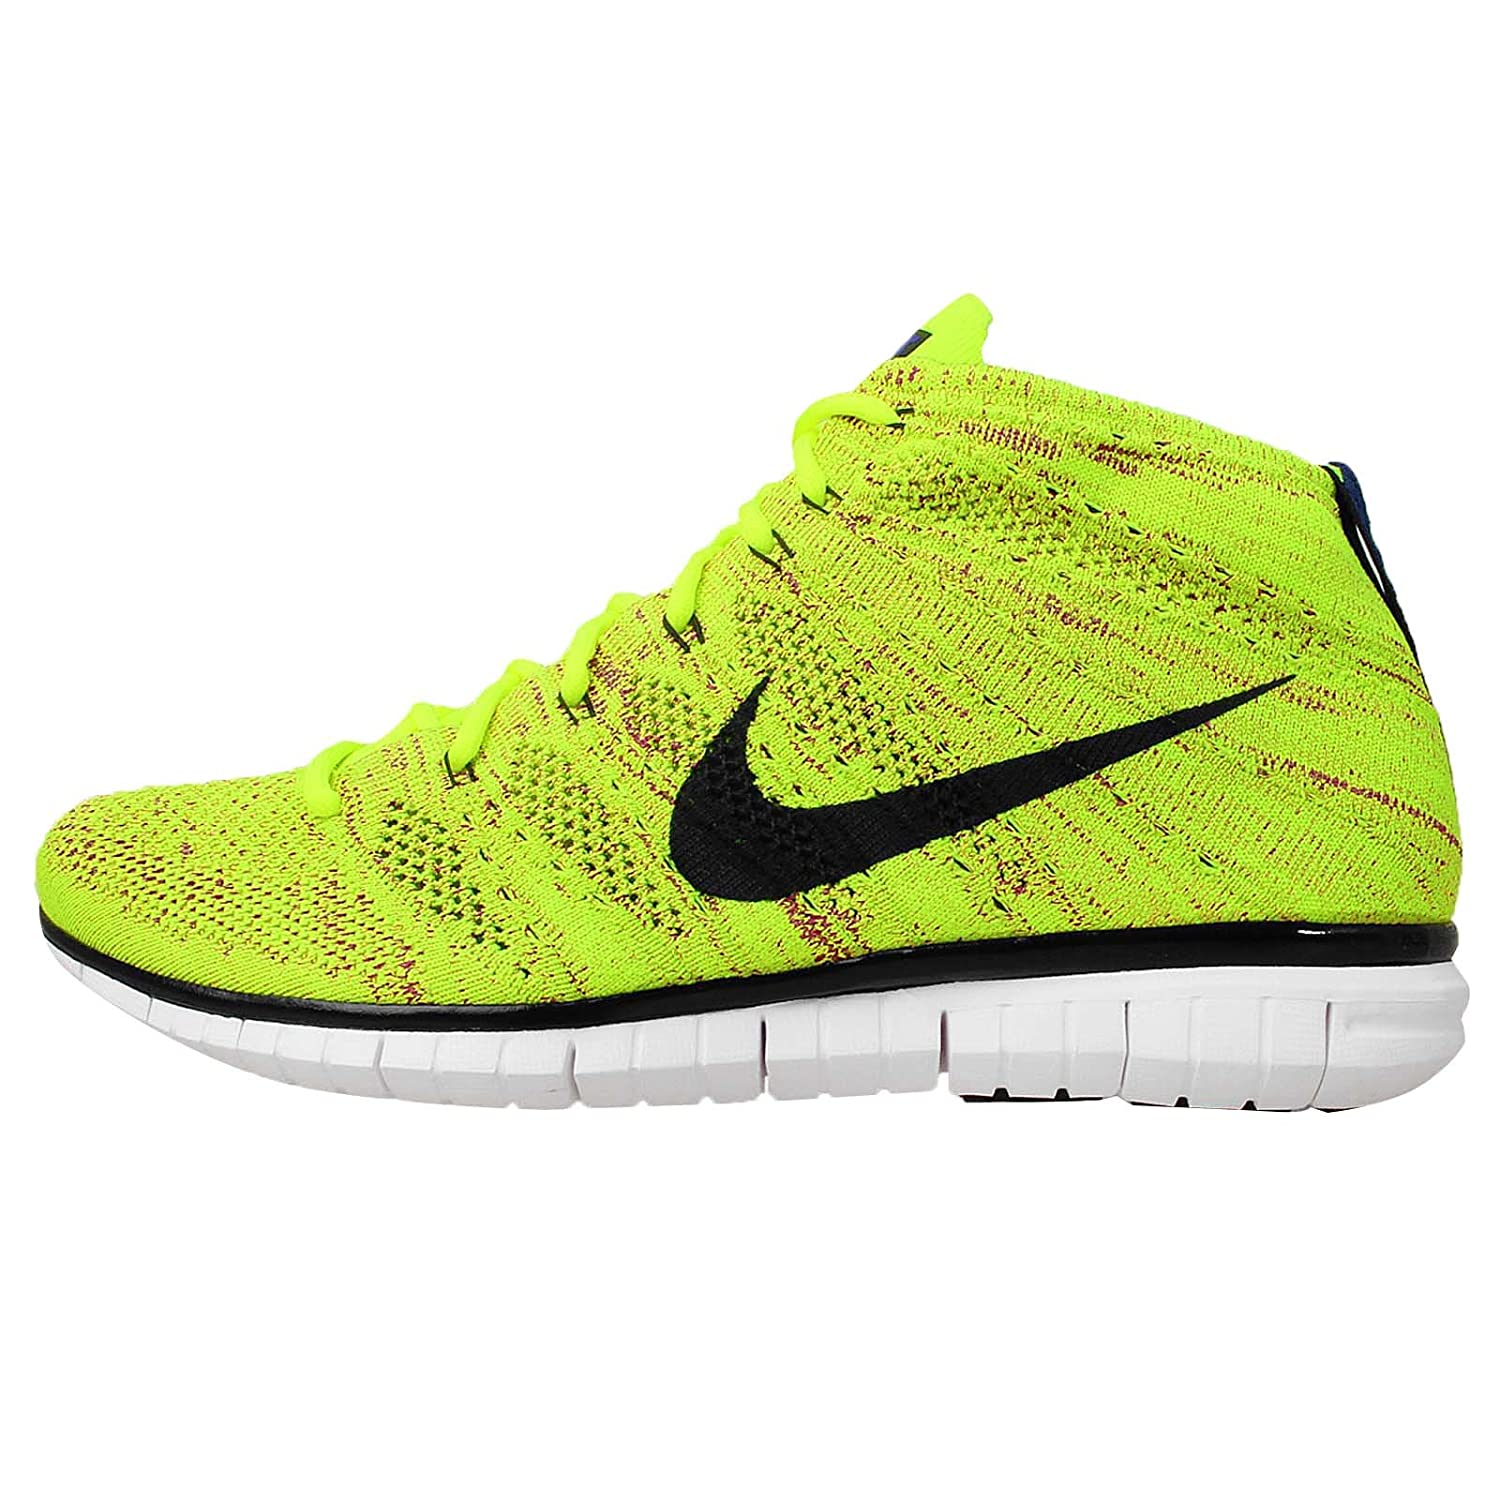 33 best images about Cheap Nike Free 5.0 V3 pas cher on Pinterest Logos